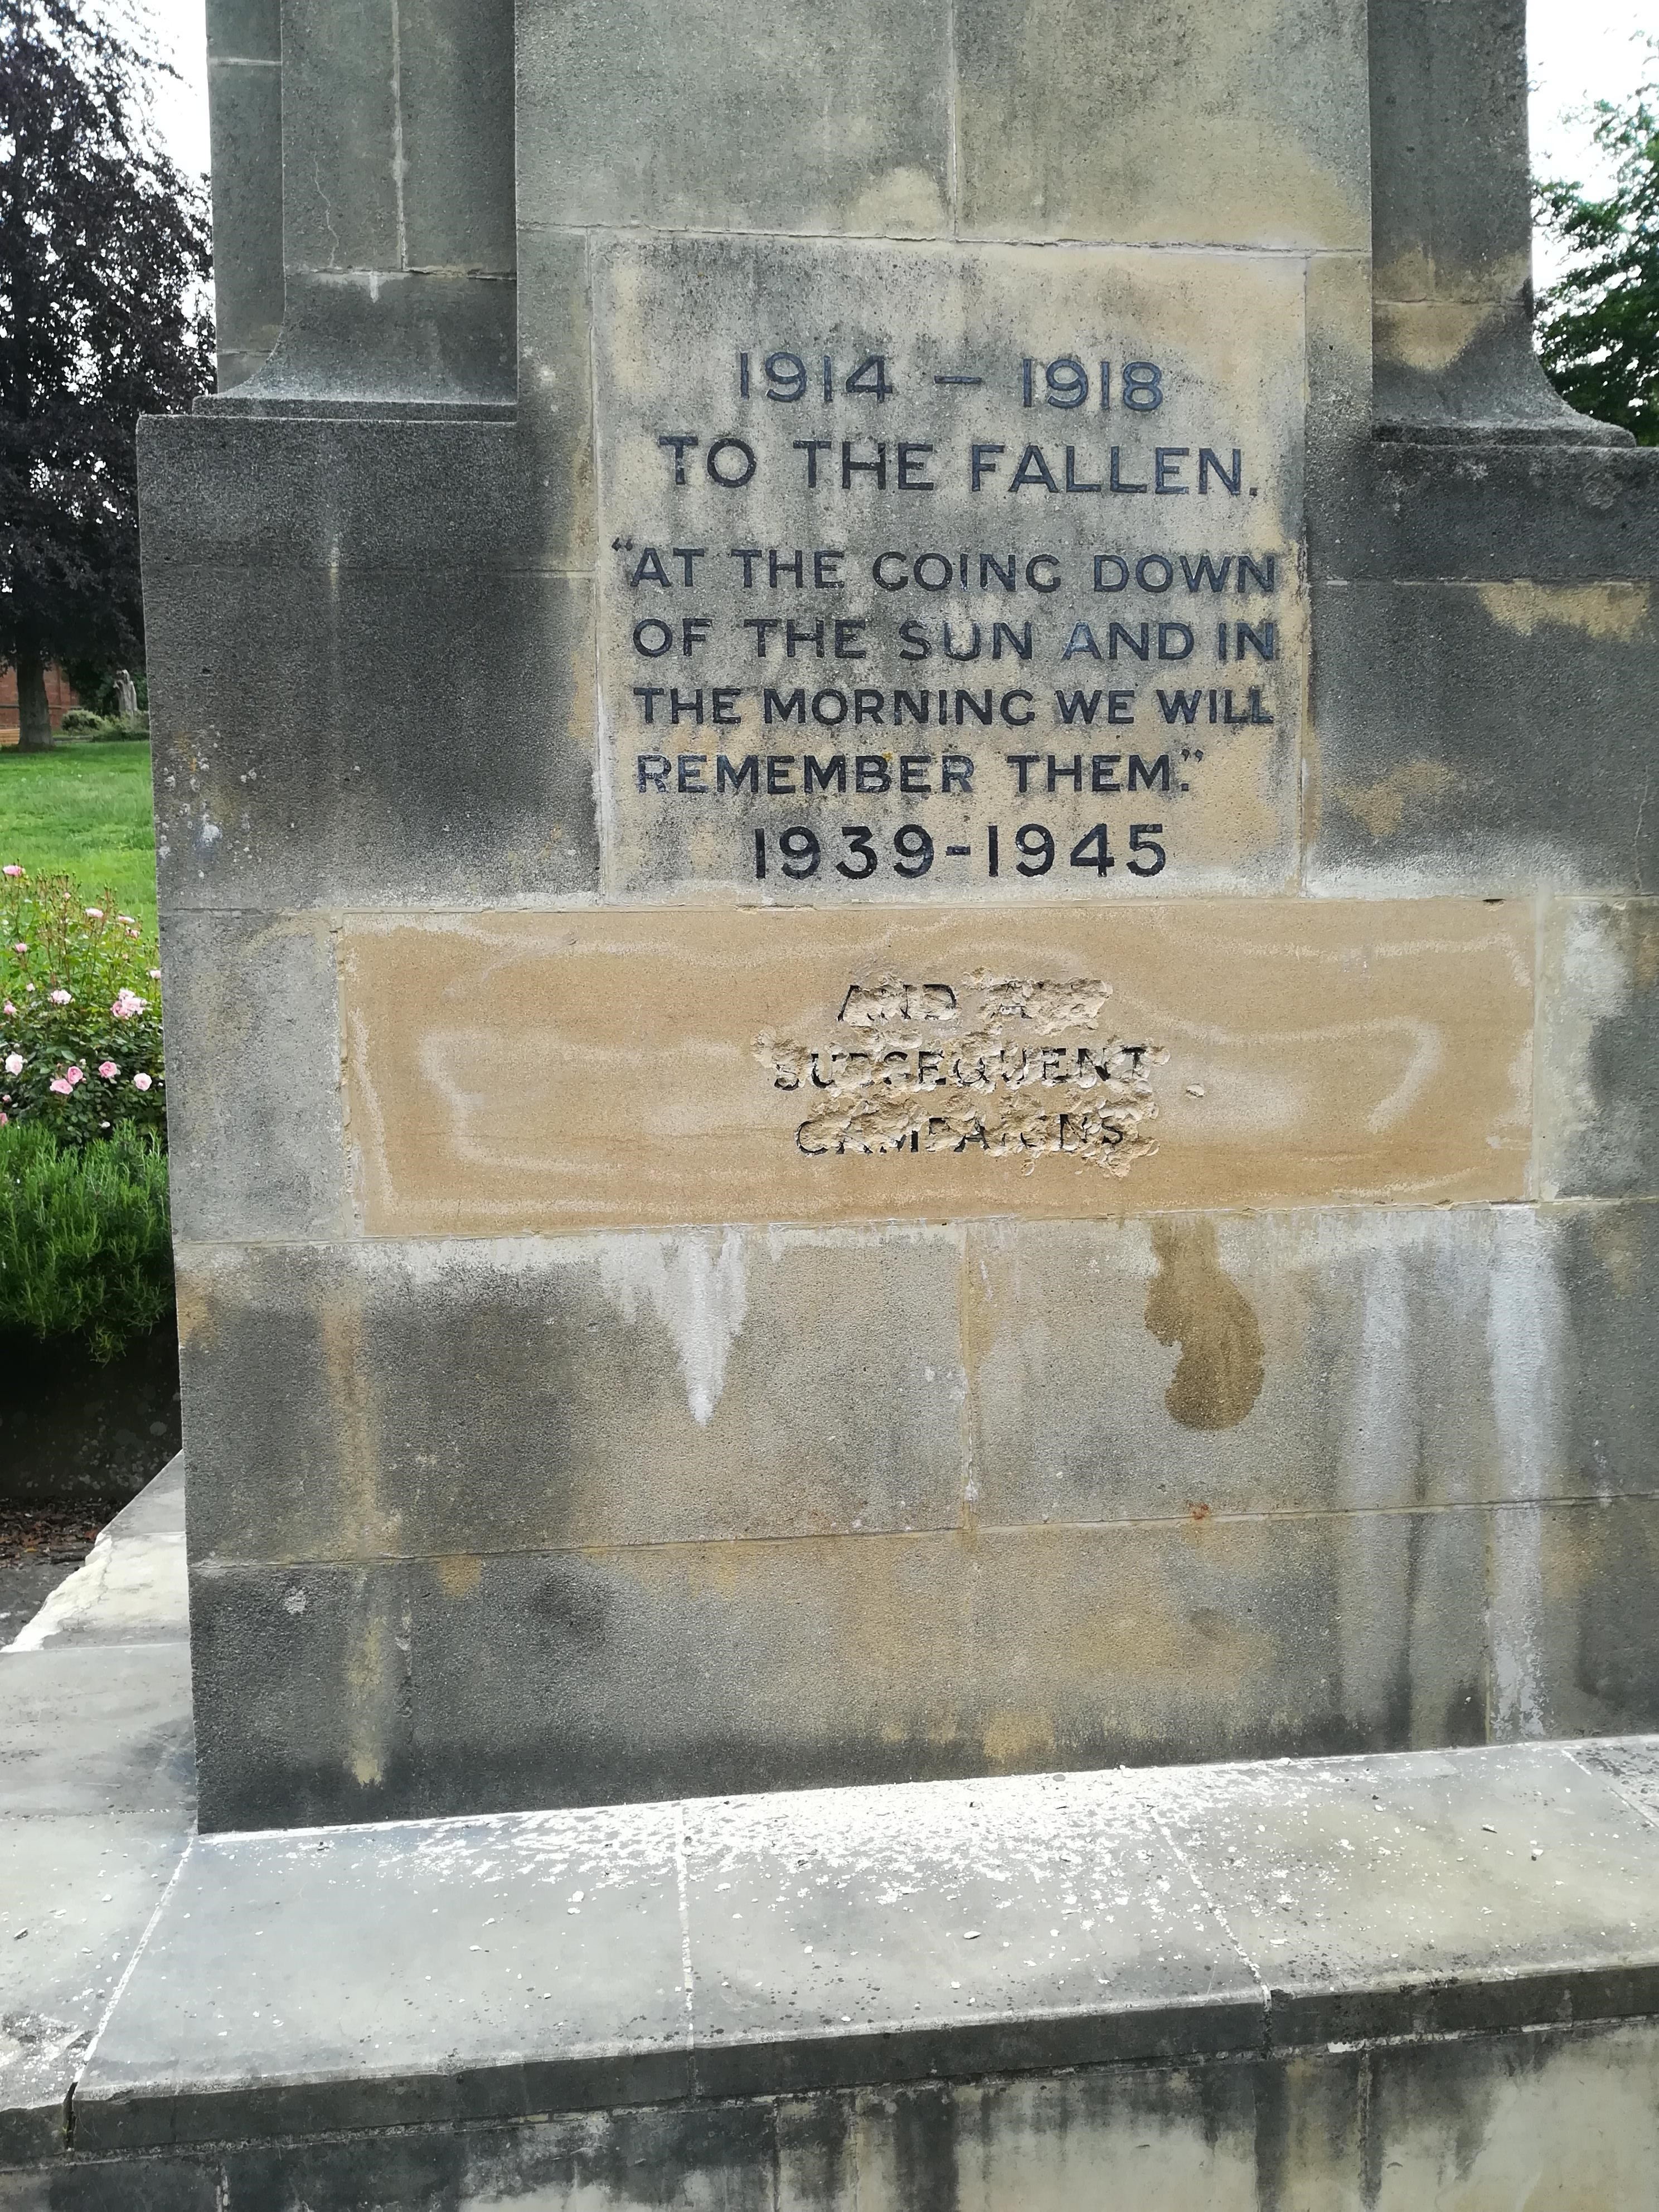 The damaged memorial in Slad Road, Stroud.